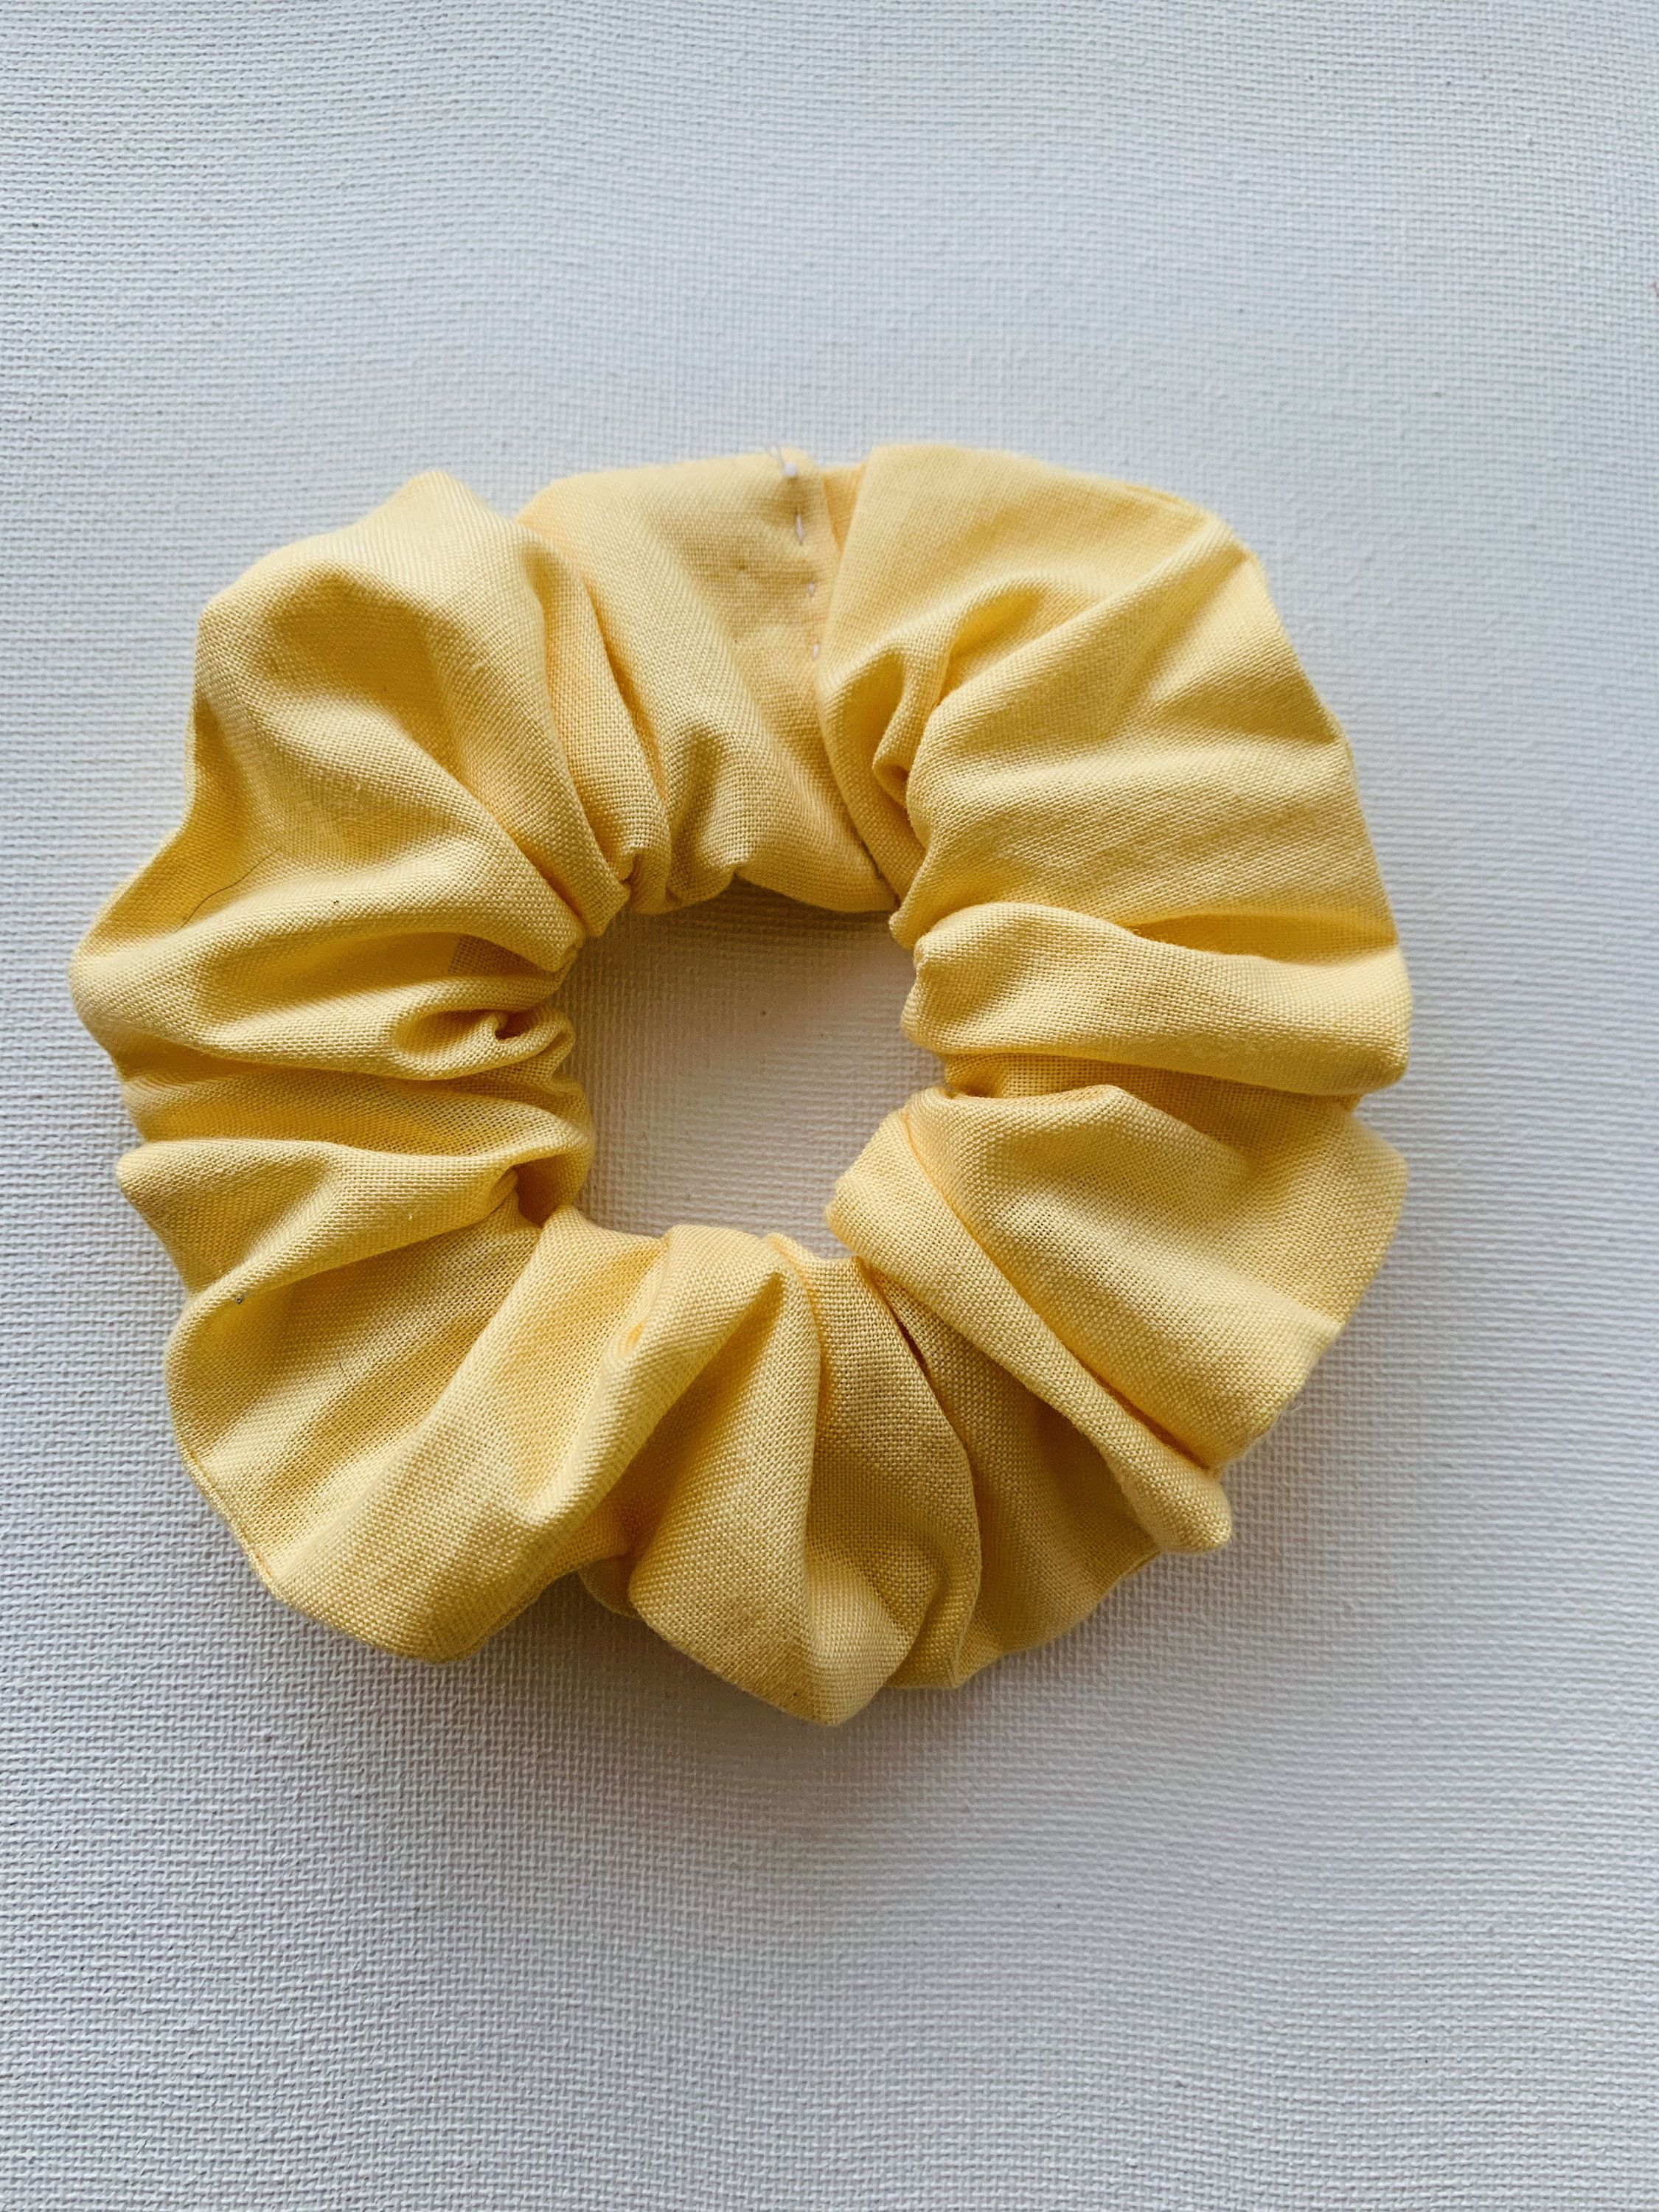 Pastel Yellow Hair Scrunchie, Scrunchy, Top Knot, Hair Tie, Hair Elastic, Hair Accessories, Gift, Present, Handsewn #hairscrunchie